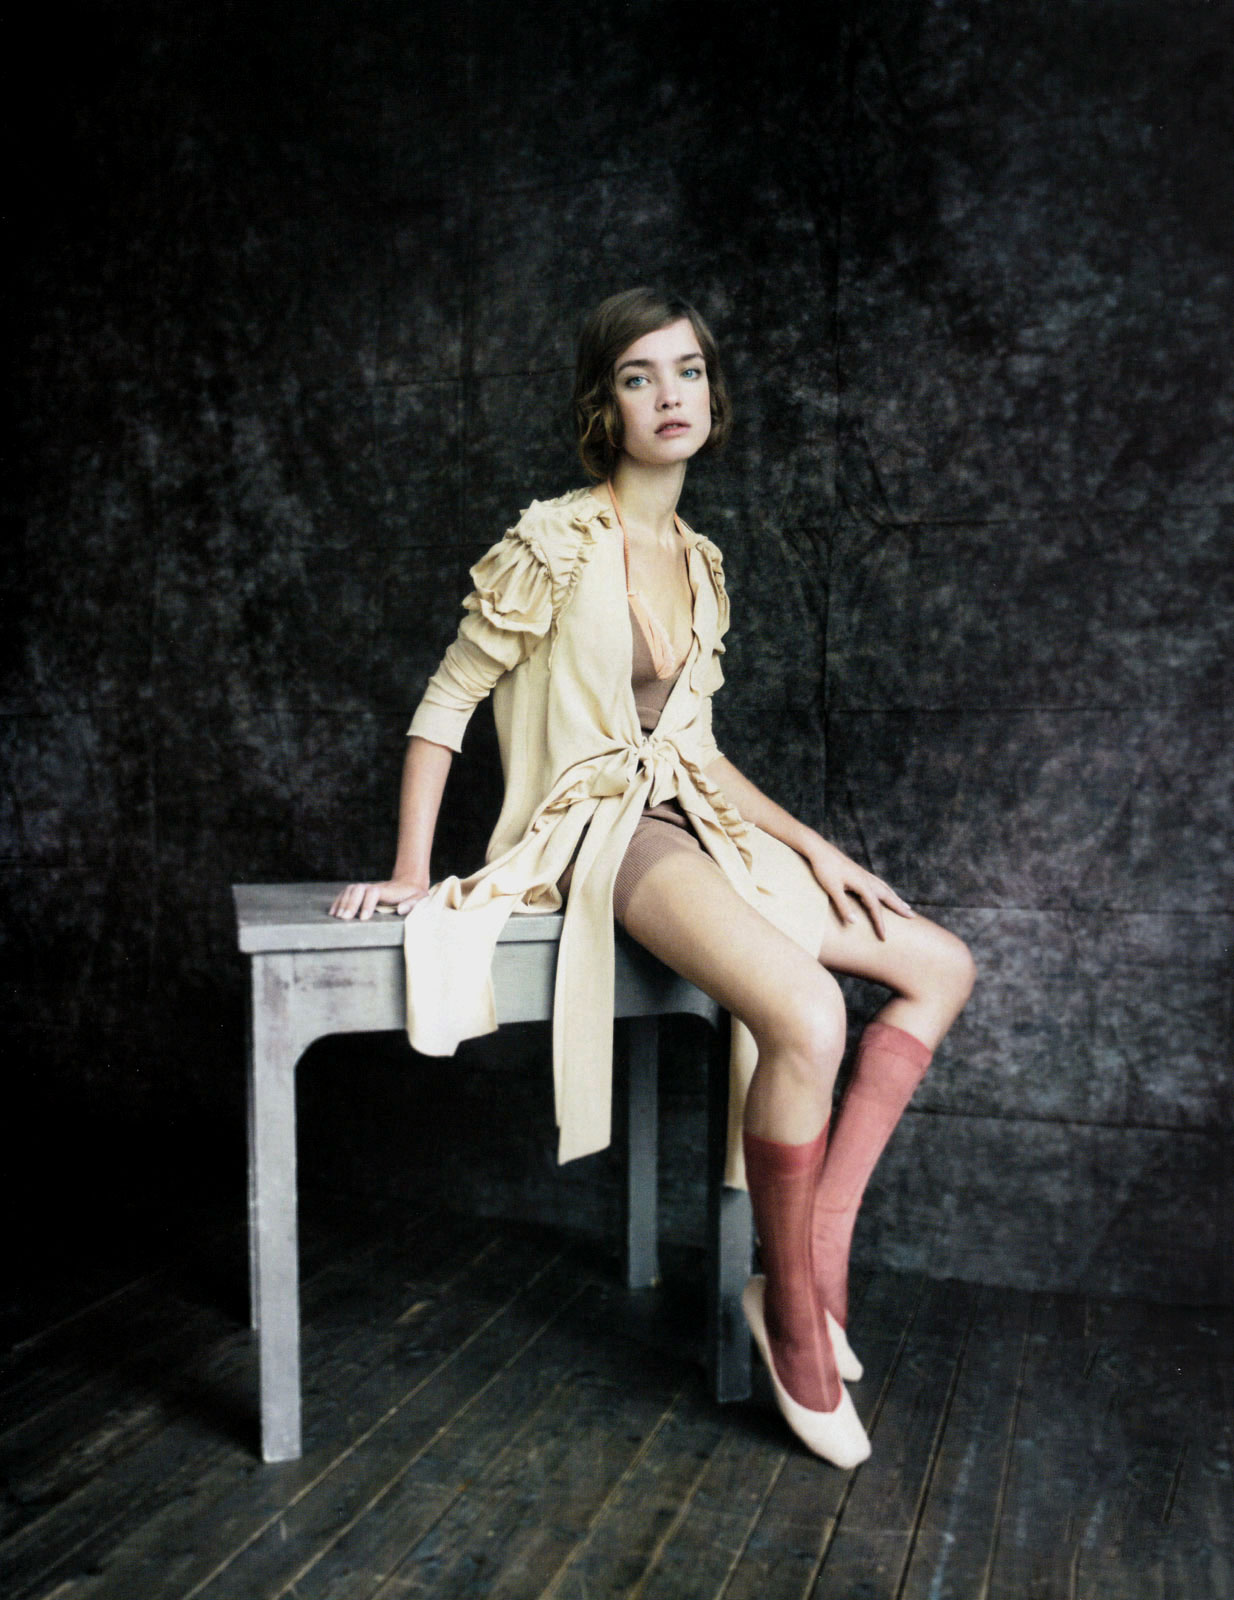 Natalia Vodianova in Vogue China May 2010 (photography: Paolo Roversti, styling: Violetta Santoro)